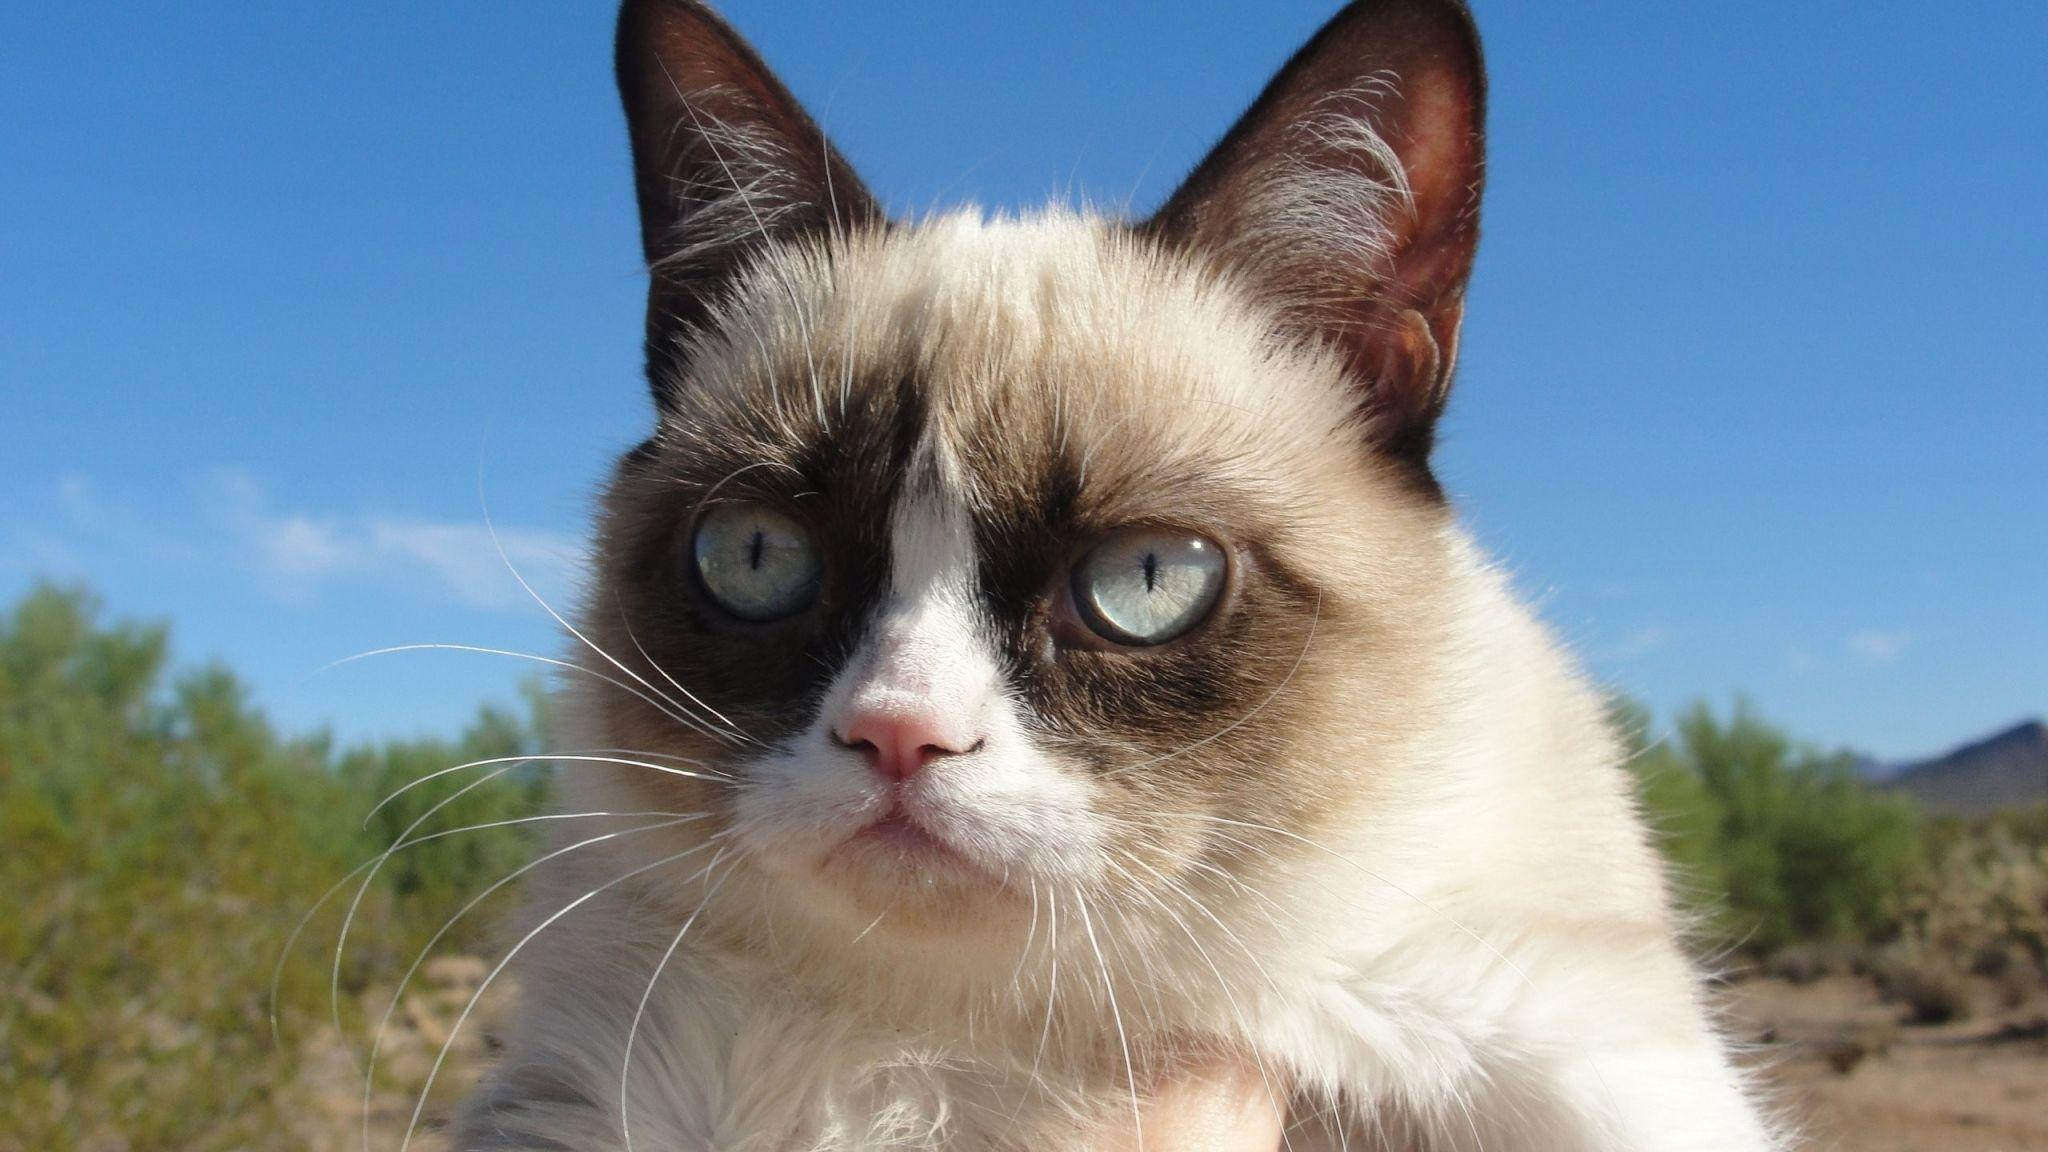 grumpy cat hd wallpapers - photo #18